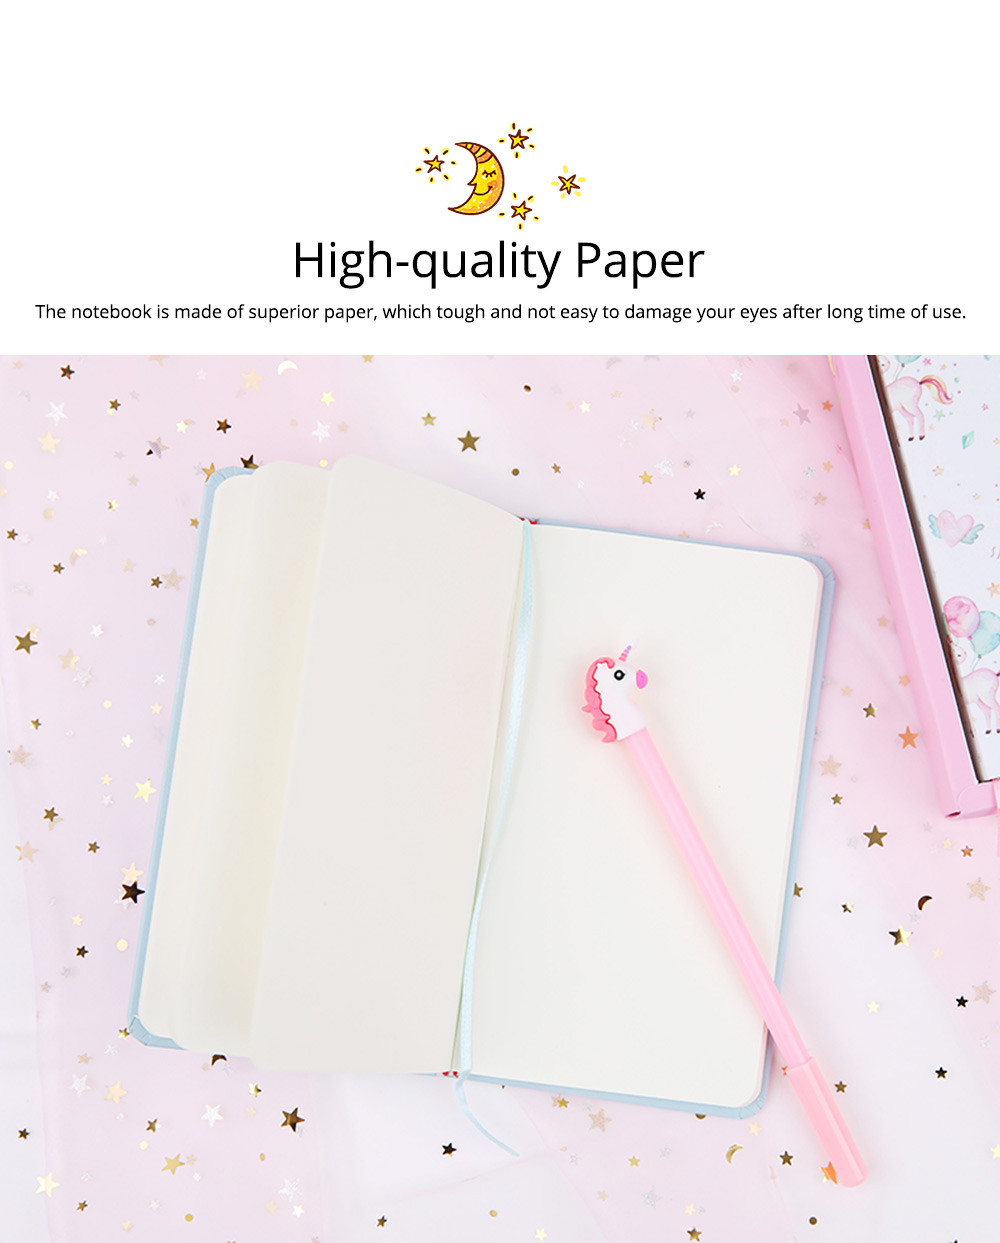 Cute Cartoon Notepads with Pen, Fancy Notepads & Pens Set Gifts for Girls 1